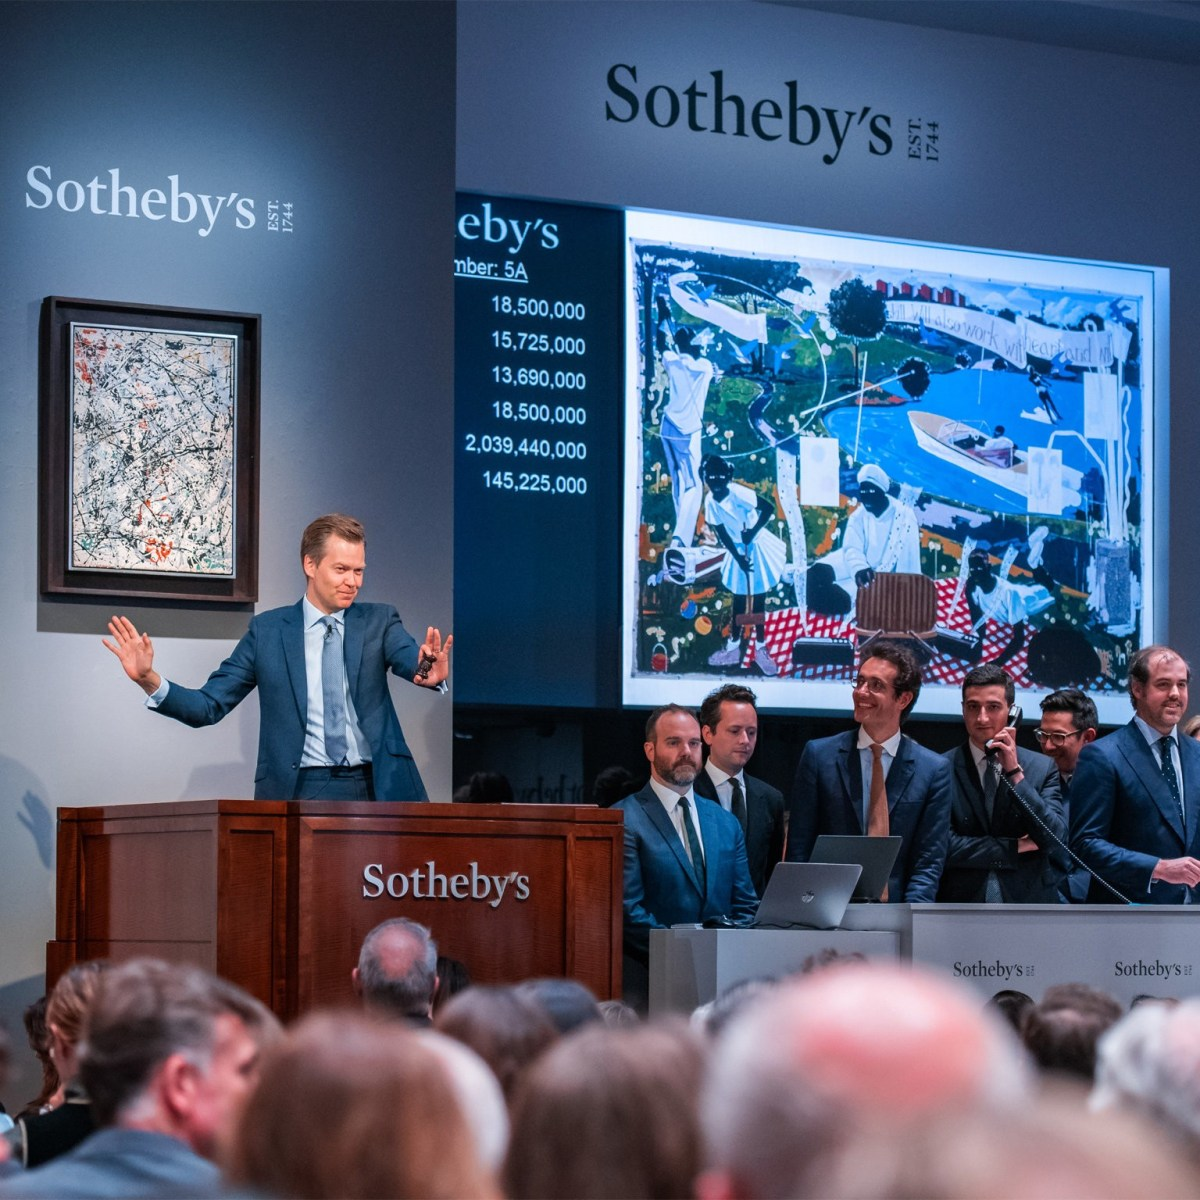 Kerry James Marshall's 'Past Times' Soars to Record-Setting $21.1 Million at Sotheby's, Artist Assumes Mantle as Most Expensive Living African American Artist